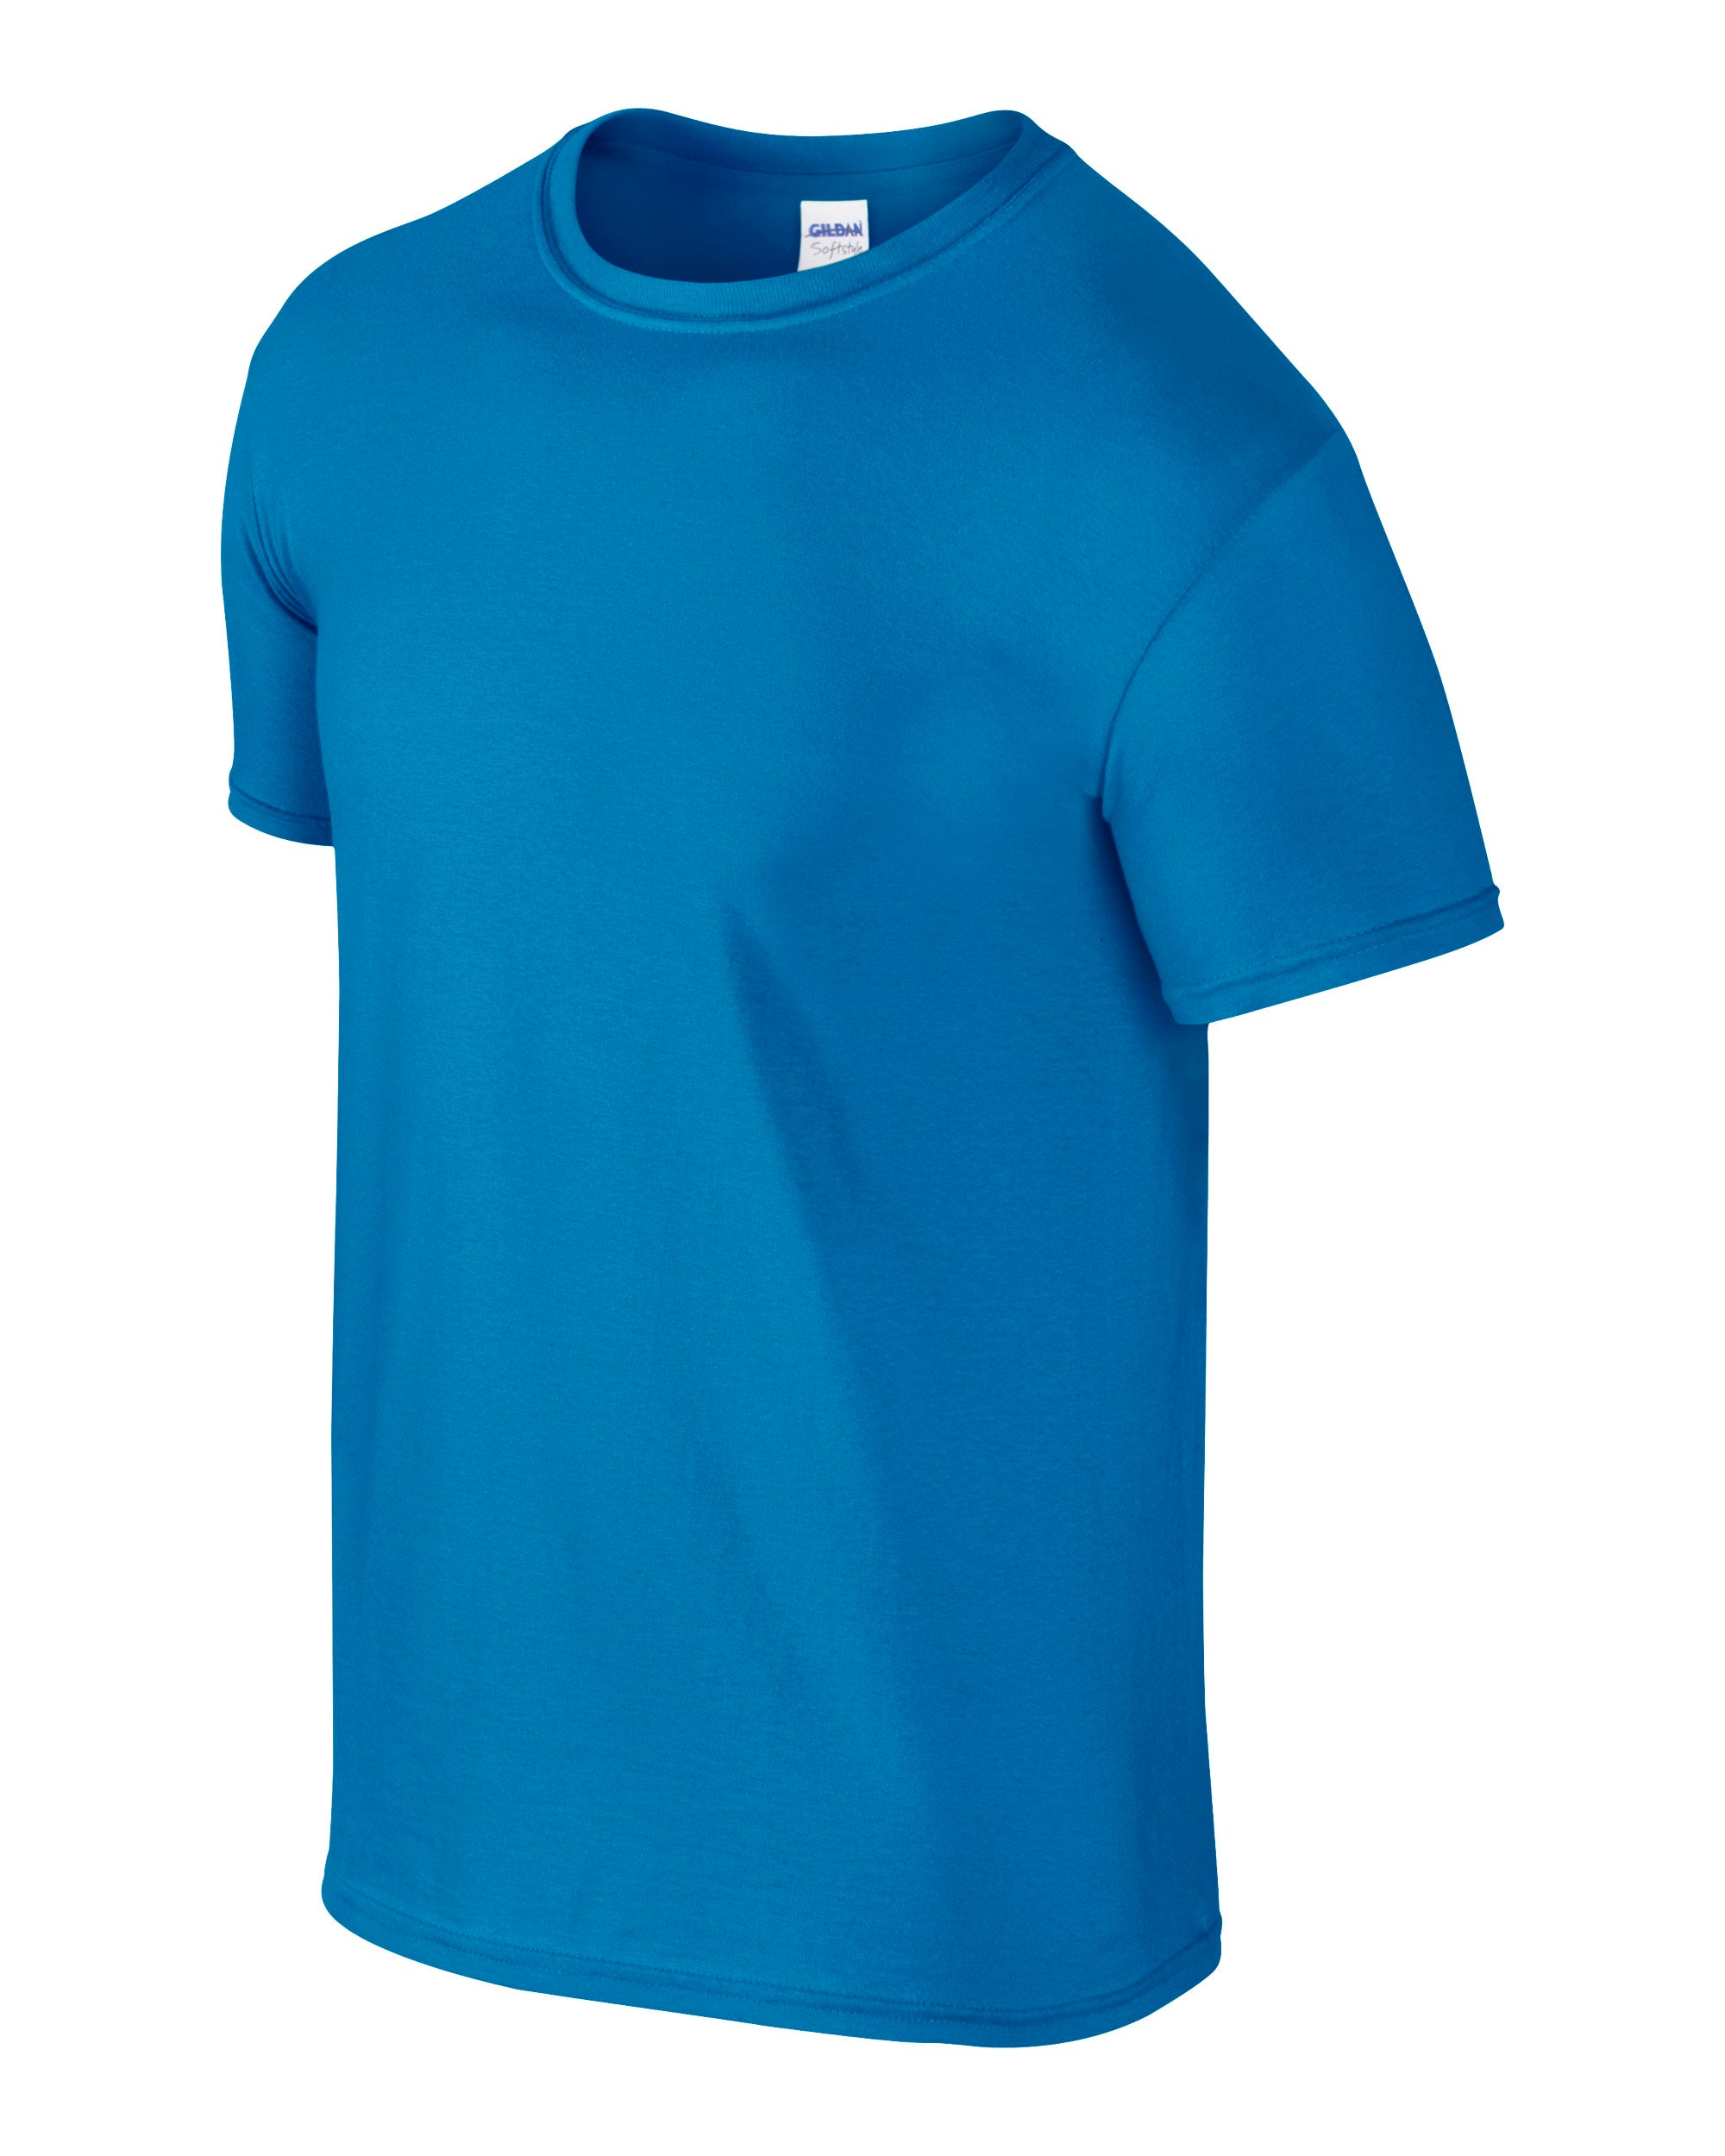 Cotton Men's T-shirt